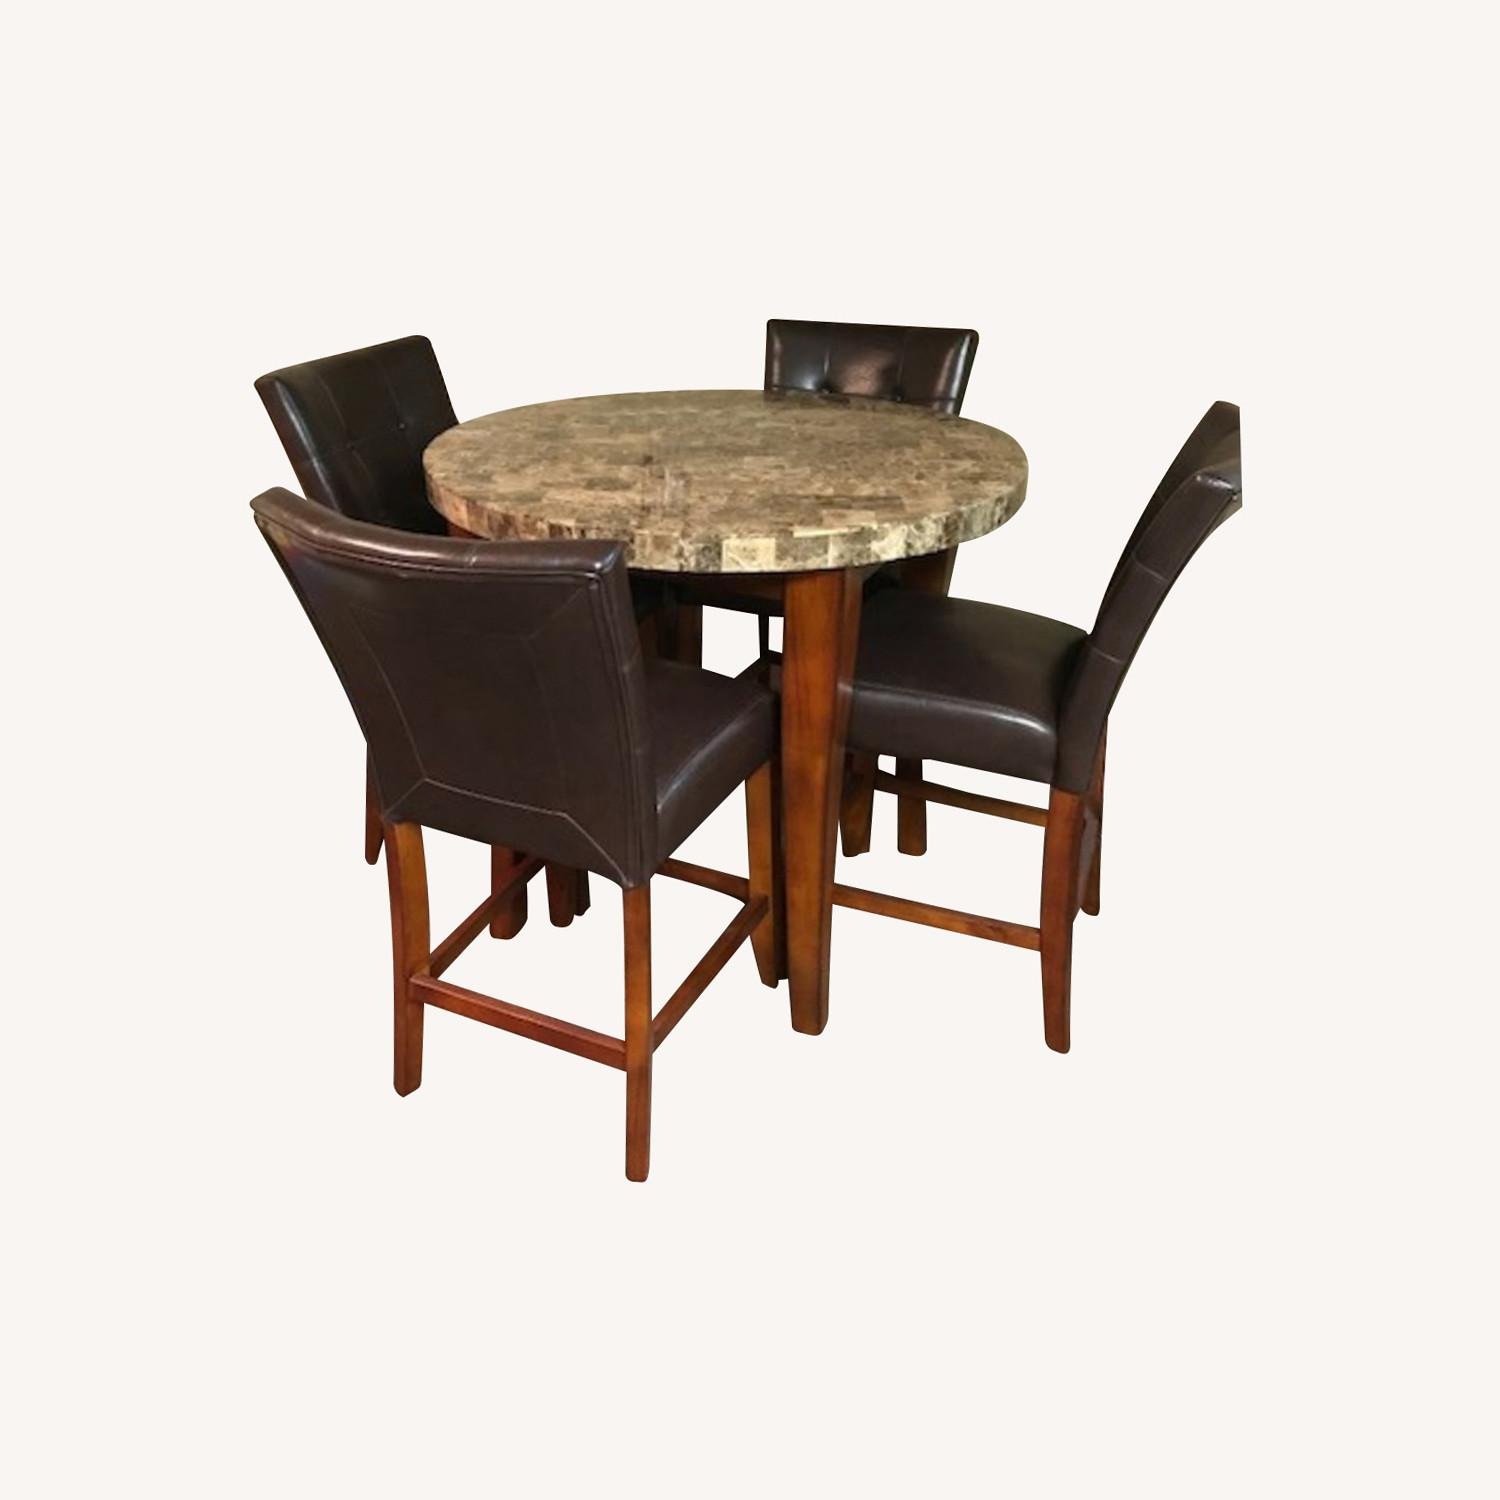 Bob's Discount Furniture Bar Table and 4 Stools - image-0